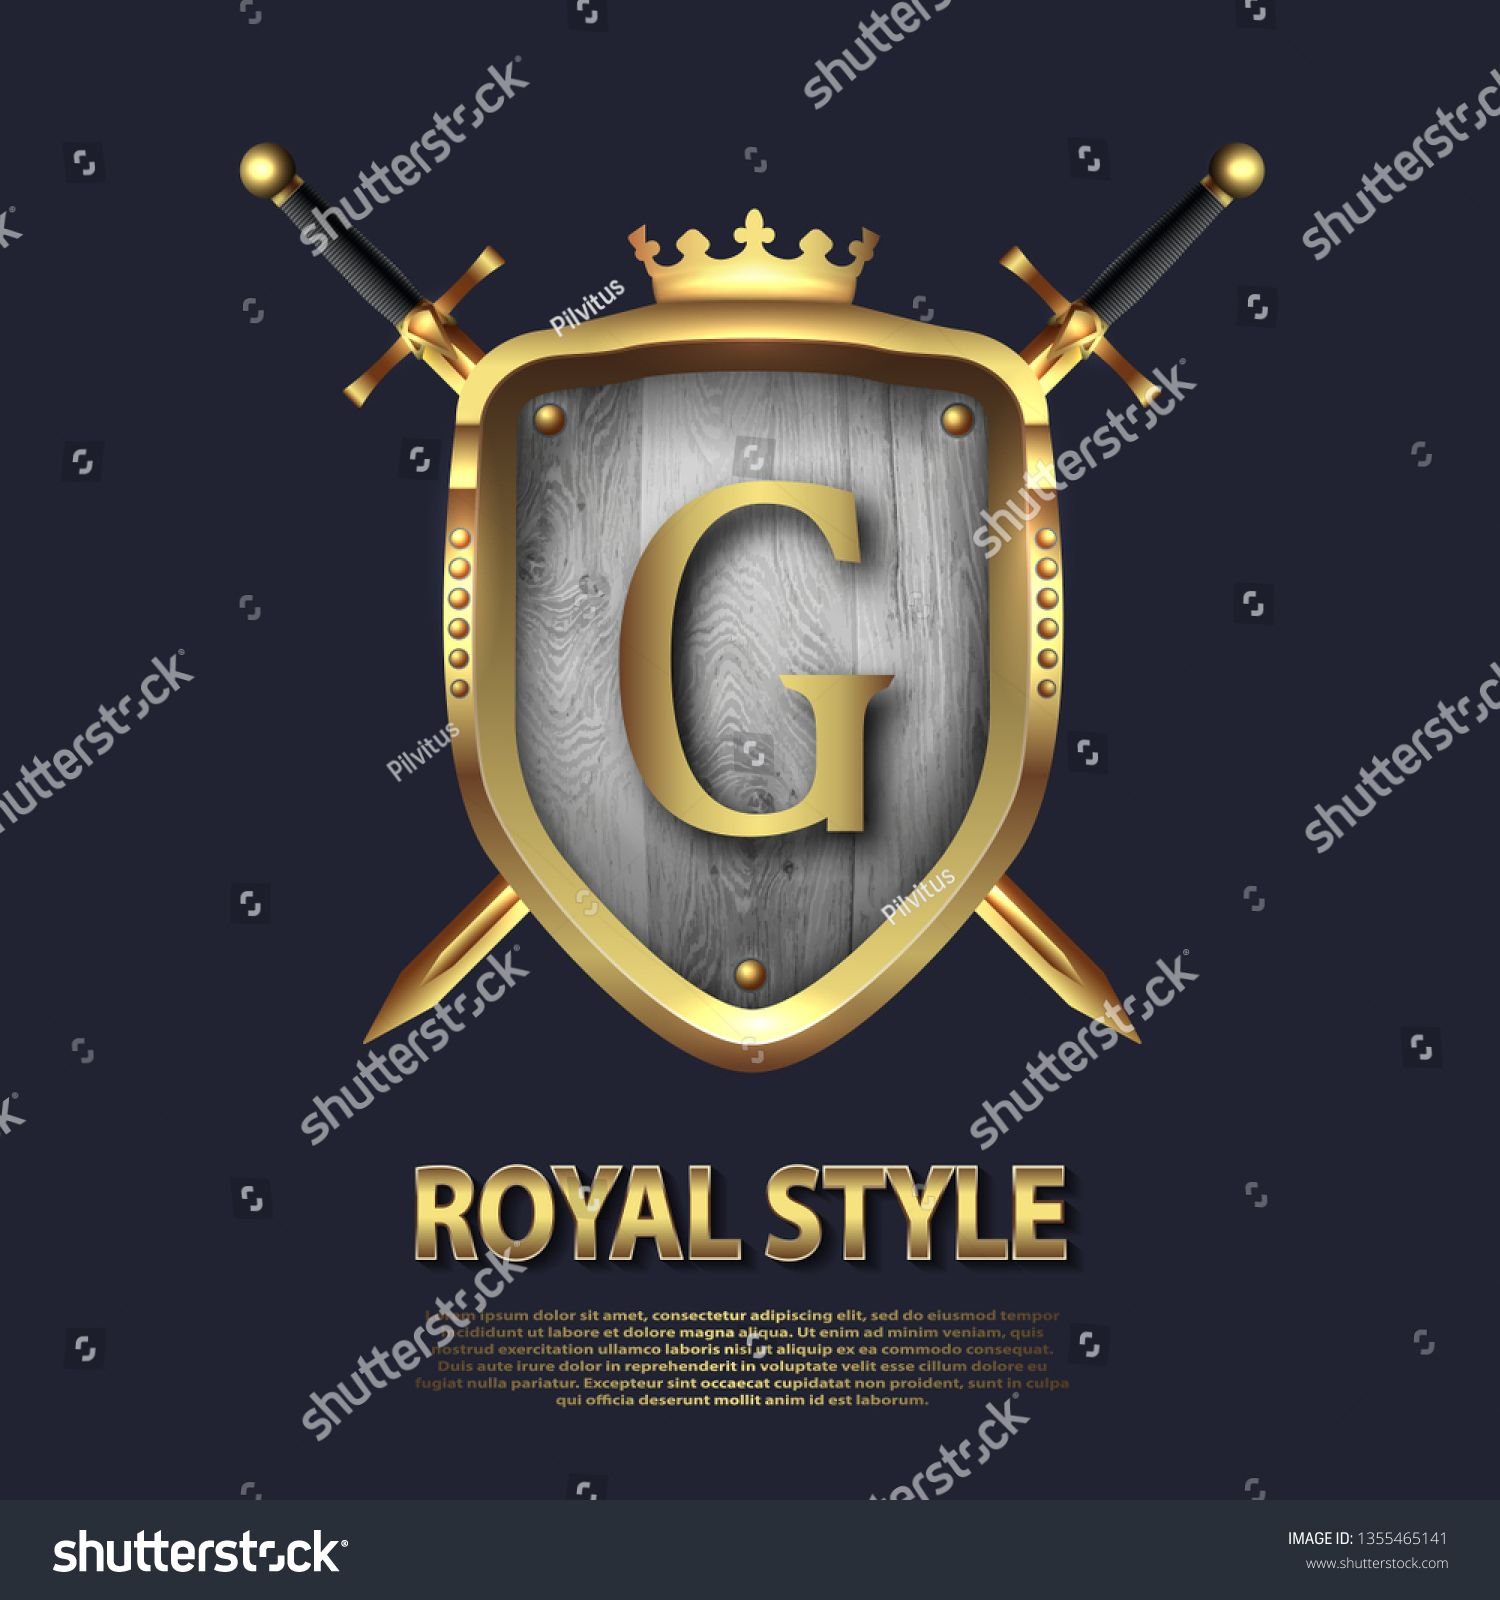 Two crossed swords and shield with crown and letter G